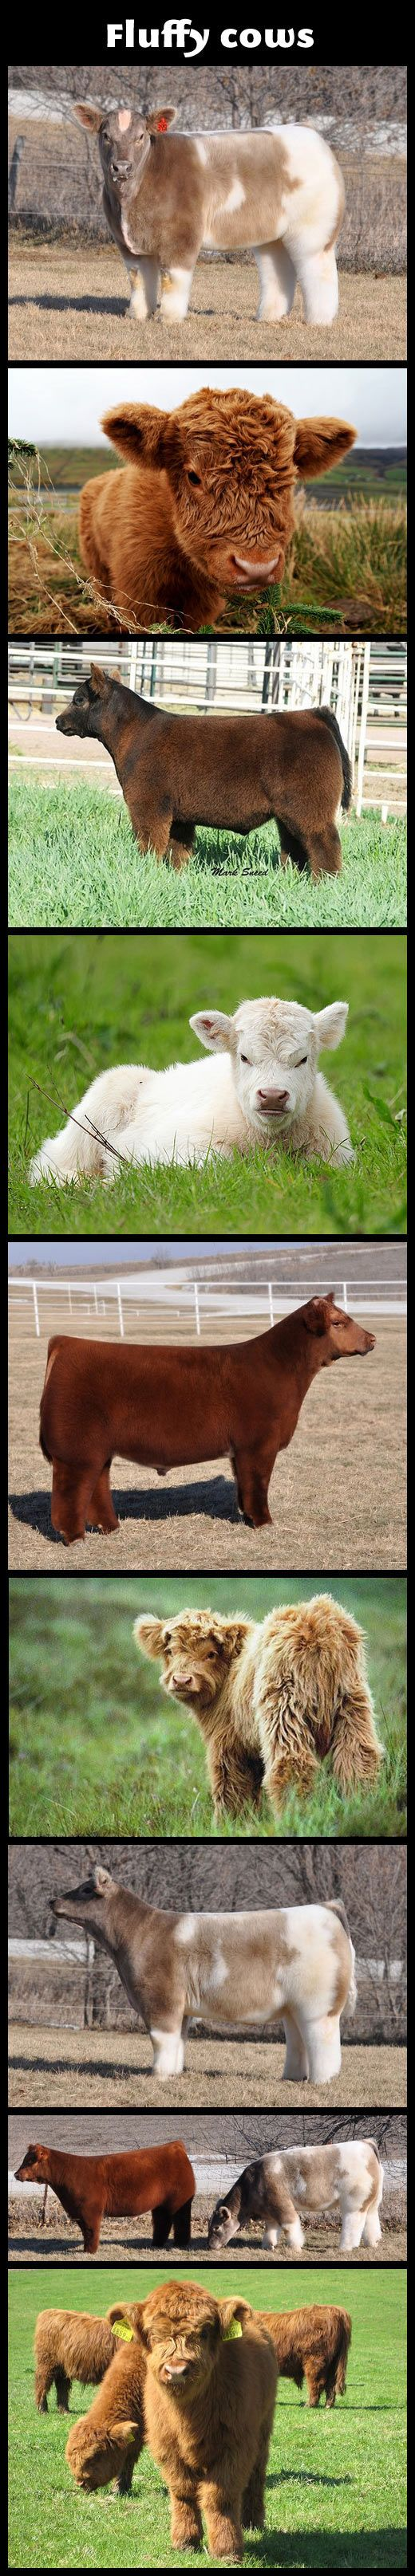 Fluffy Cows… I don't even know how to express how much joy this brings me.